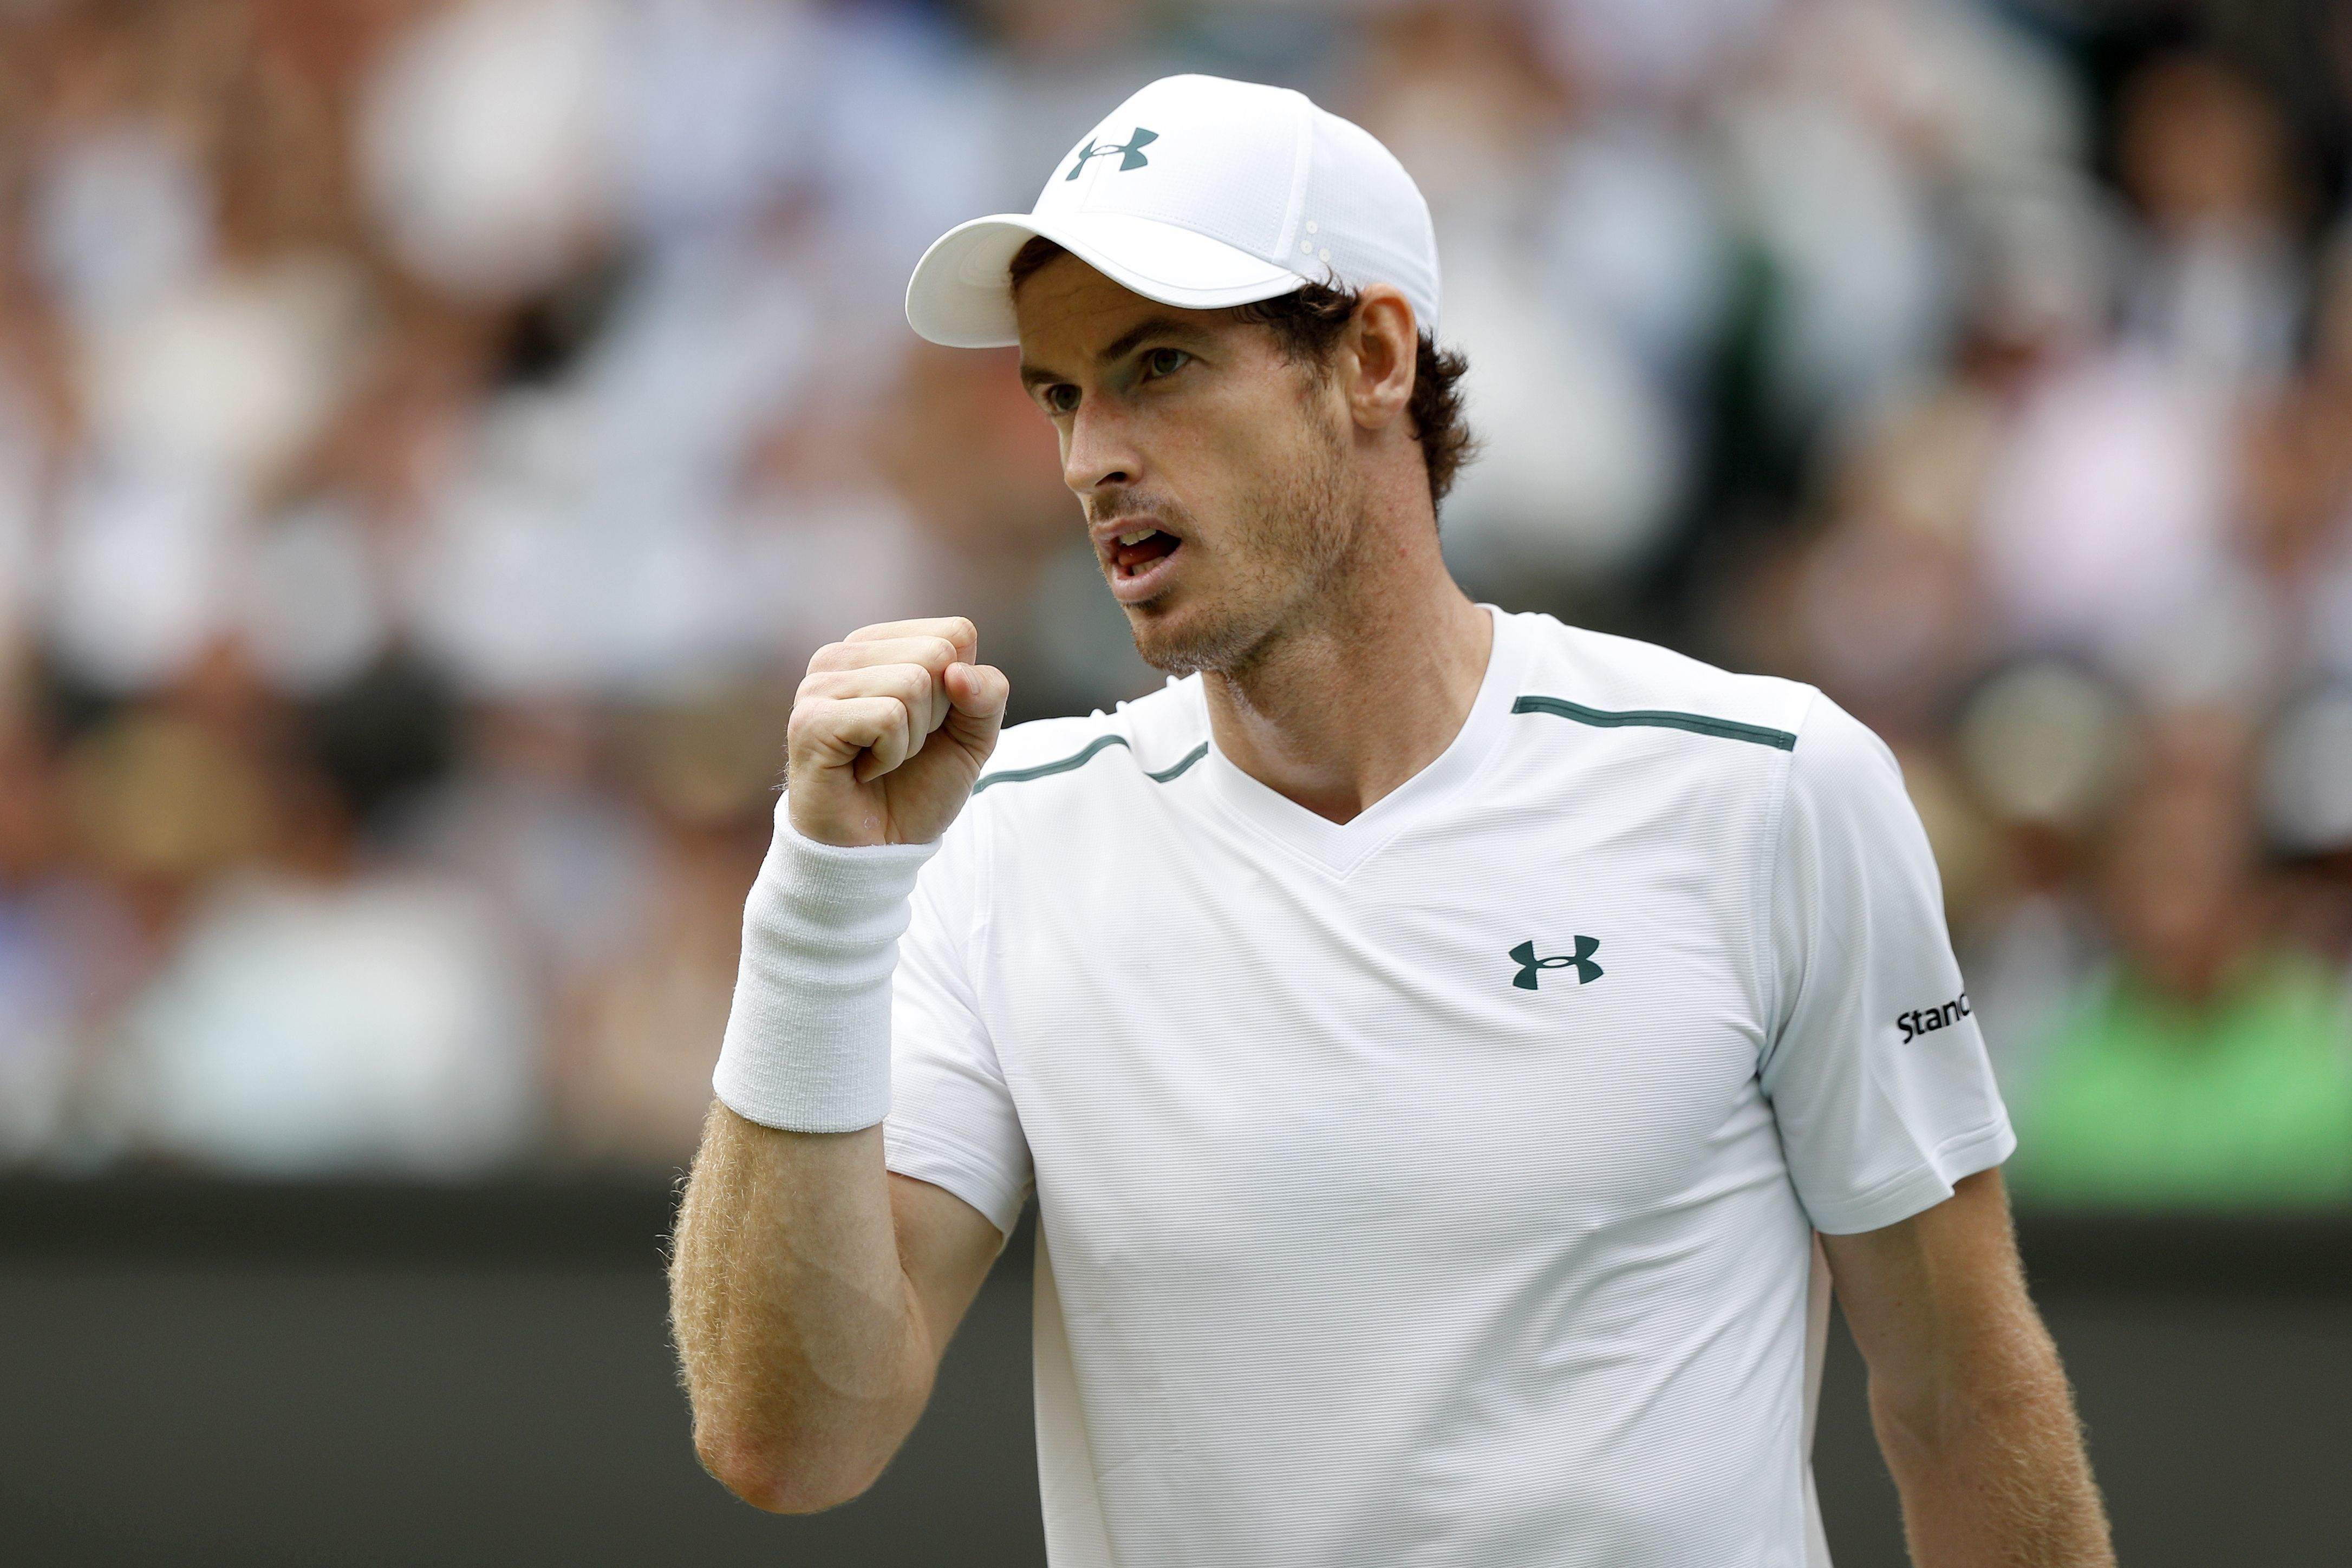 Andy Murray reacts after winning a point on the seventh day of the 2017 Wimbledon Championships on July